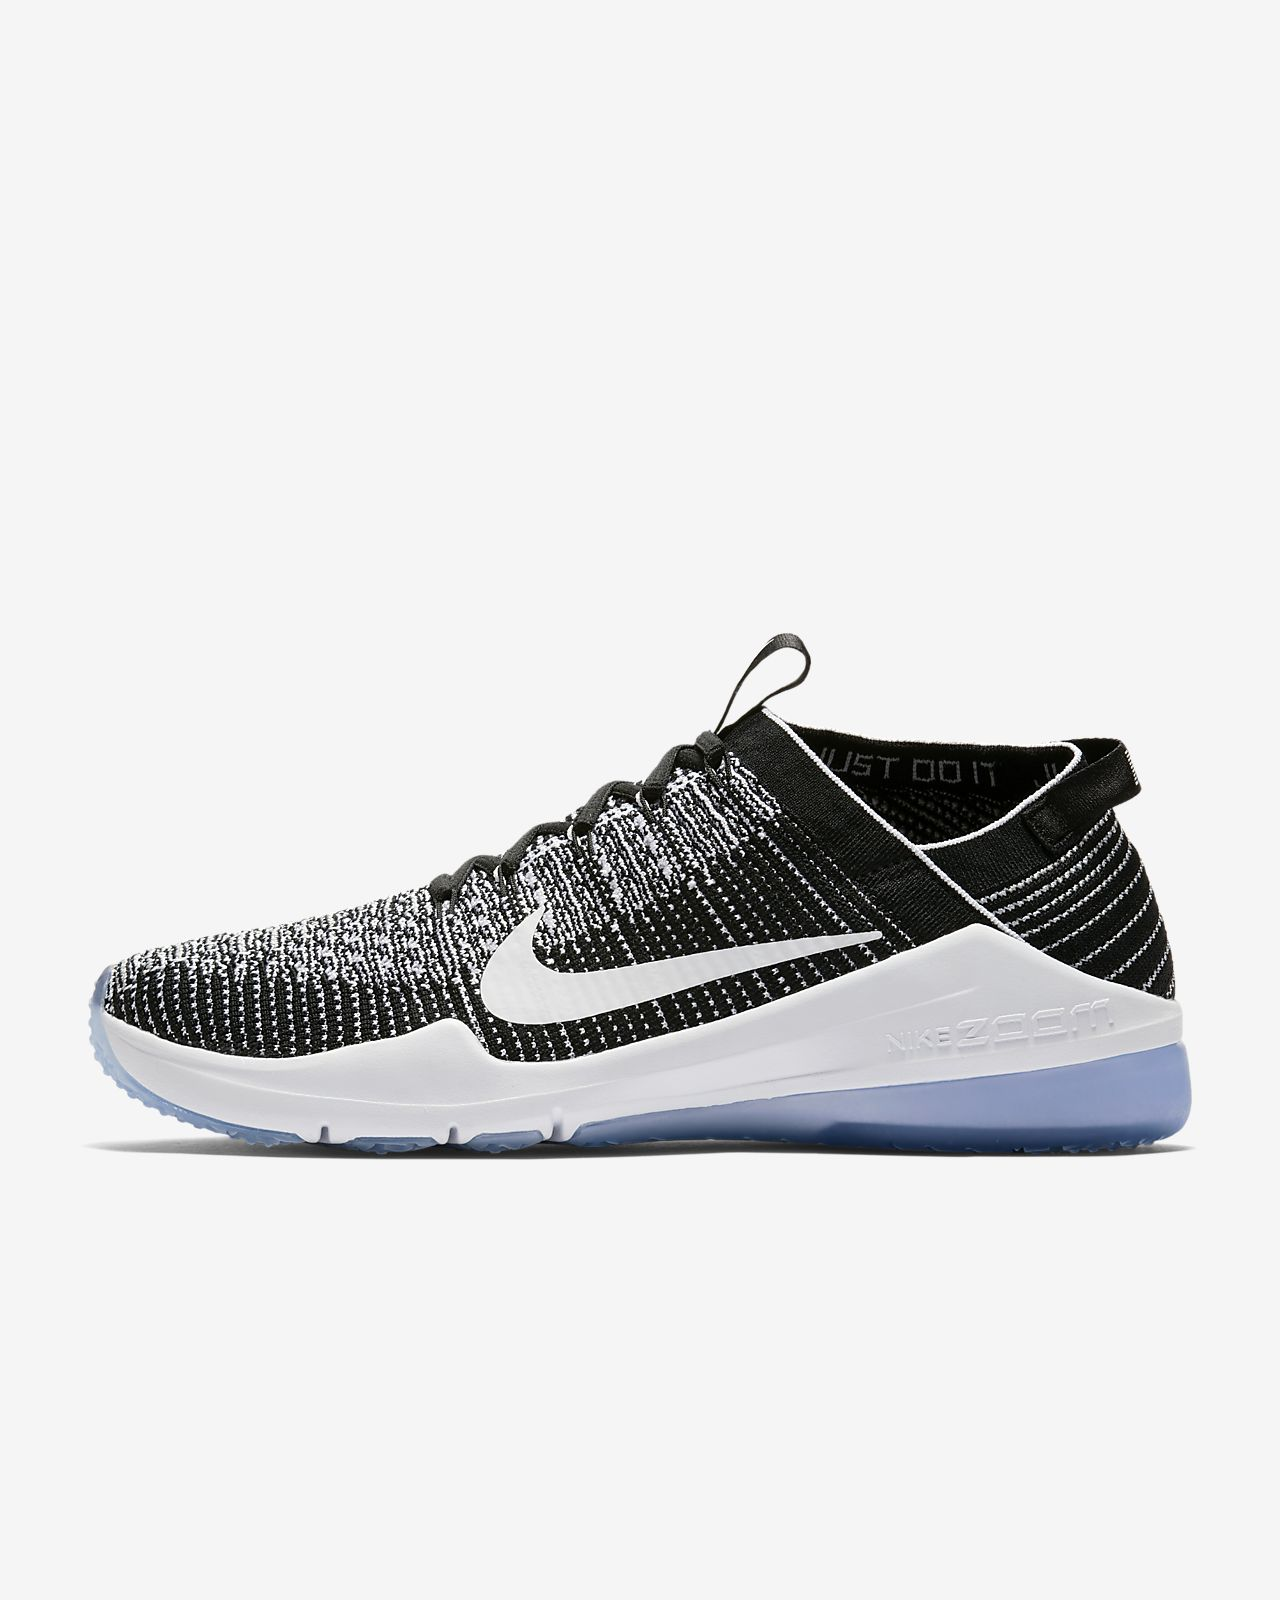 Et De TrainingBoxe Nike Fearless Zoom Air Fitness Chaussure 0Xk8nPOw